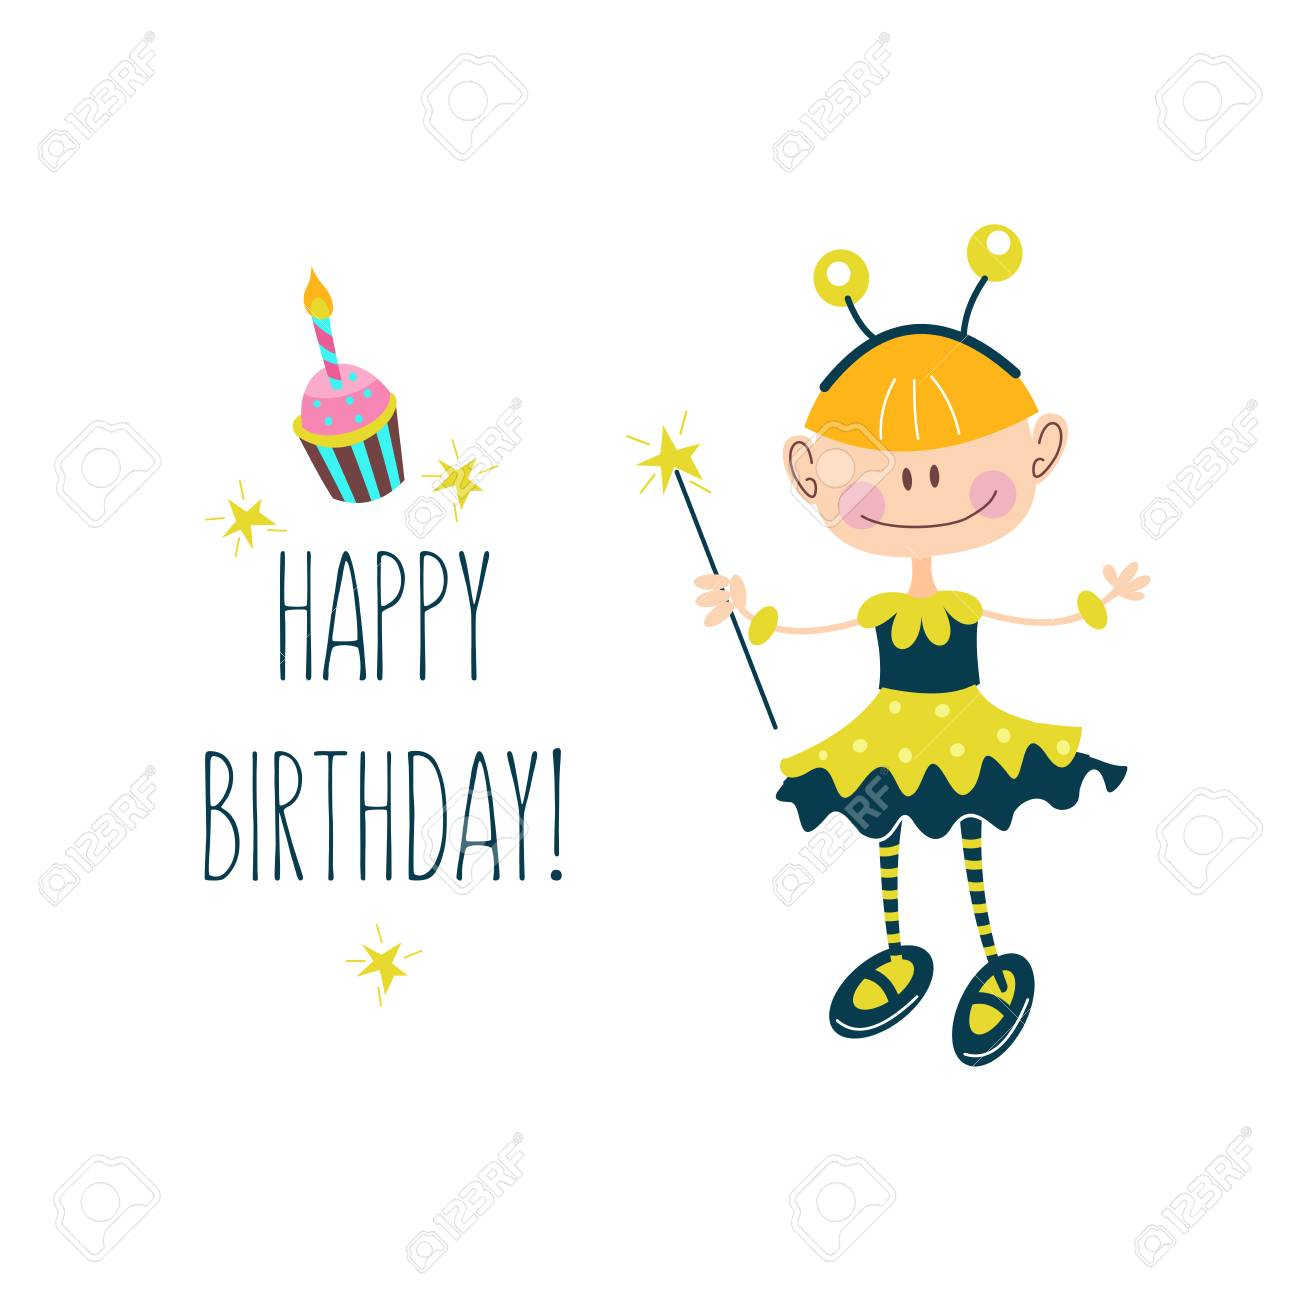 Happy Birthday Greeting Cards Cute Girls Having Fun And Delicious Cakes With Candles